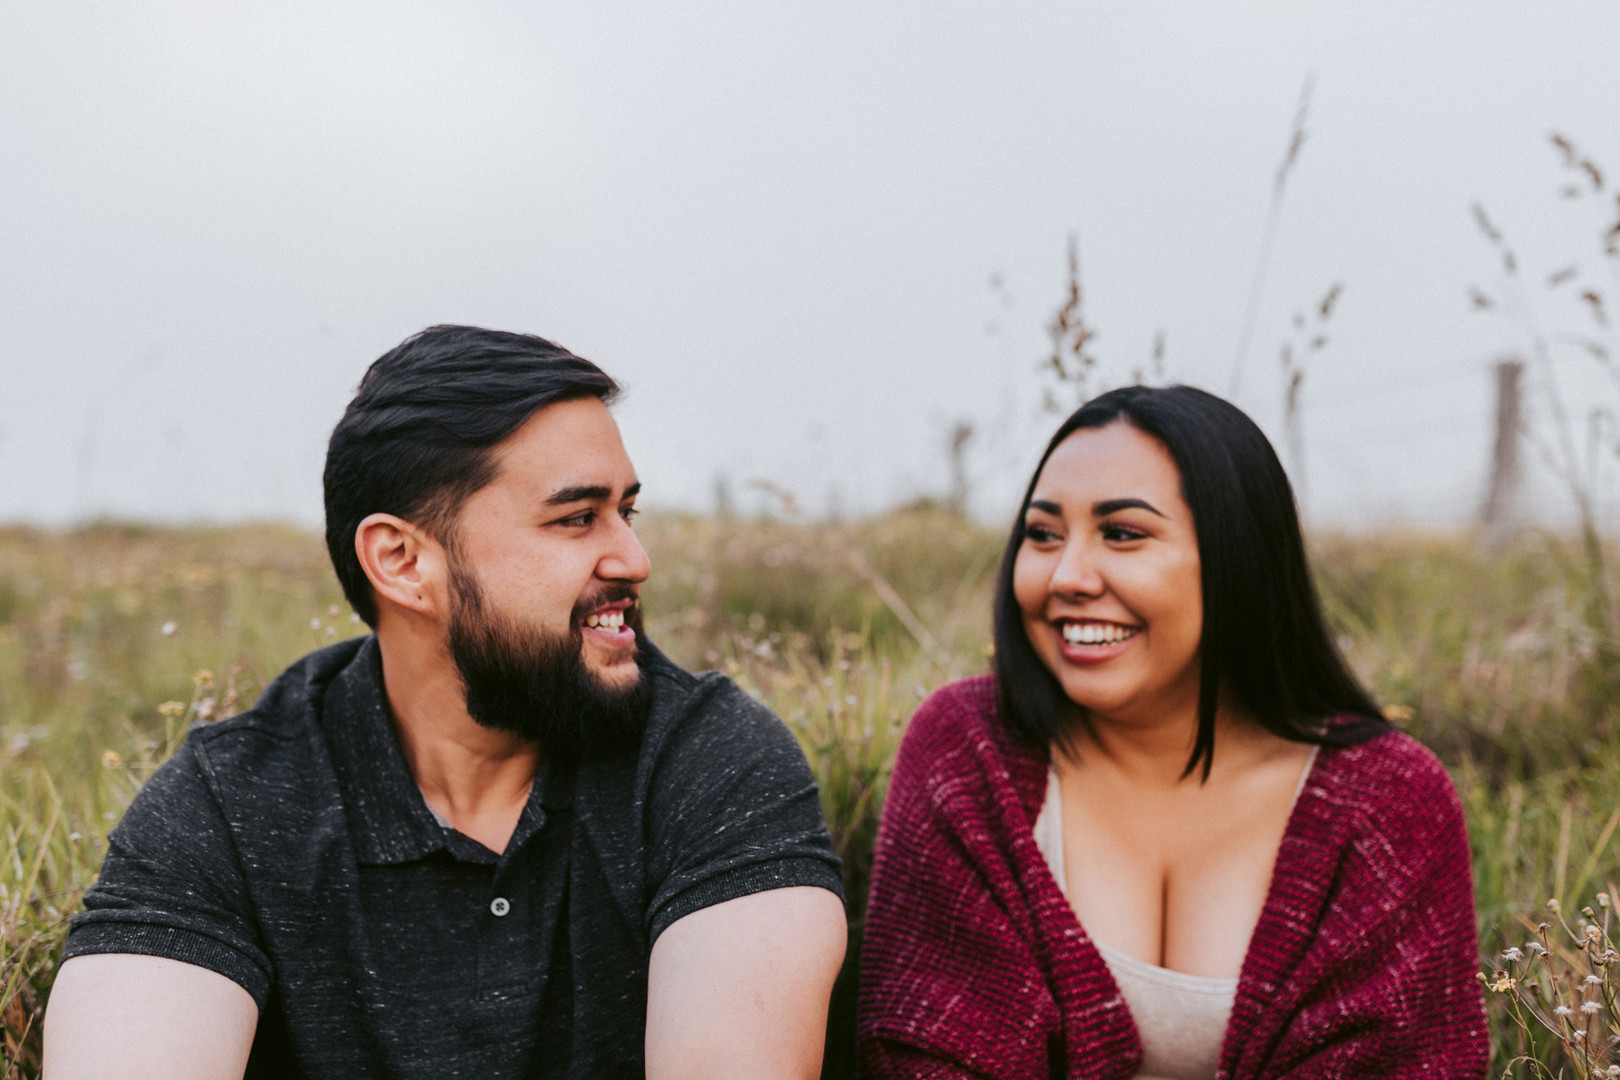 """""""We were not only satisfied with the quality of our photos, we were also very happy with the photoshoot experience itself (it was our first photoshoot). Brittani makes sure to keep her clients comfortable and happy, and it is truly reflected in the photos — especially the candid shots. I'm looking forward to booking a photoshoot with her again soon!!""""  - Chelsea + Coby"""